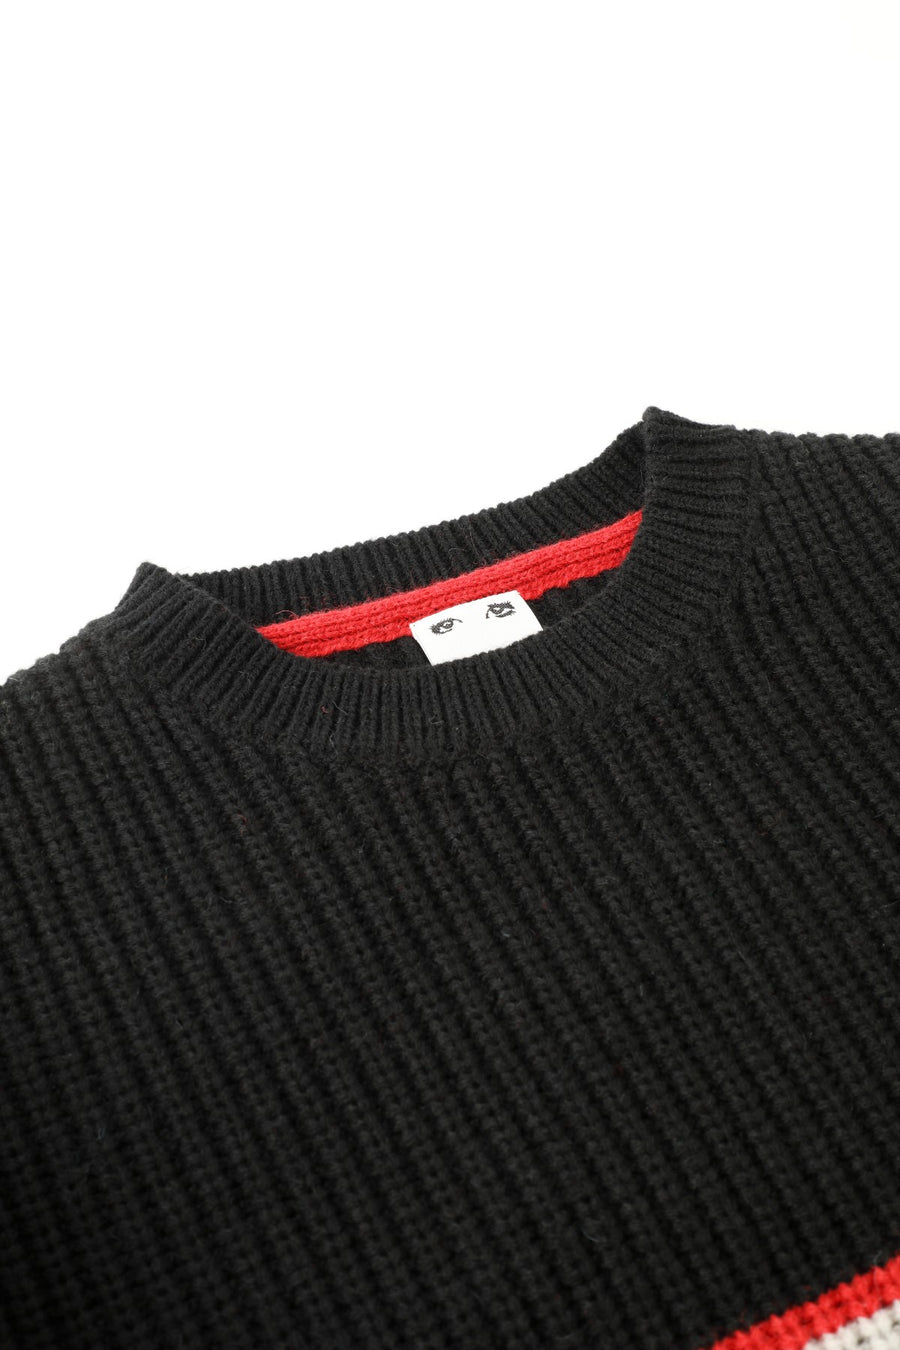 LINE KNIT TOP - X-Girl